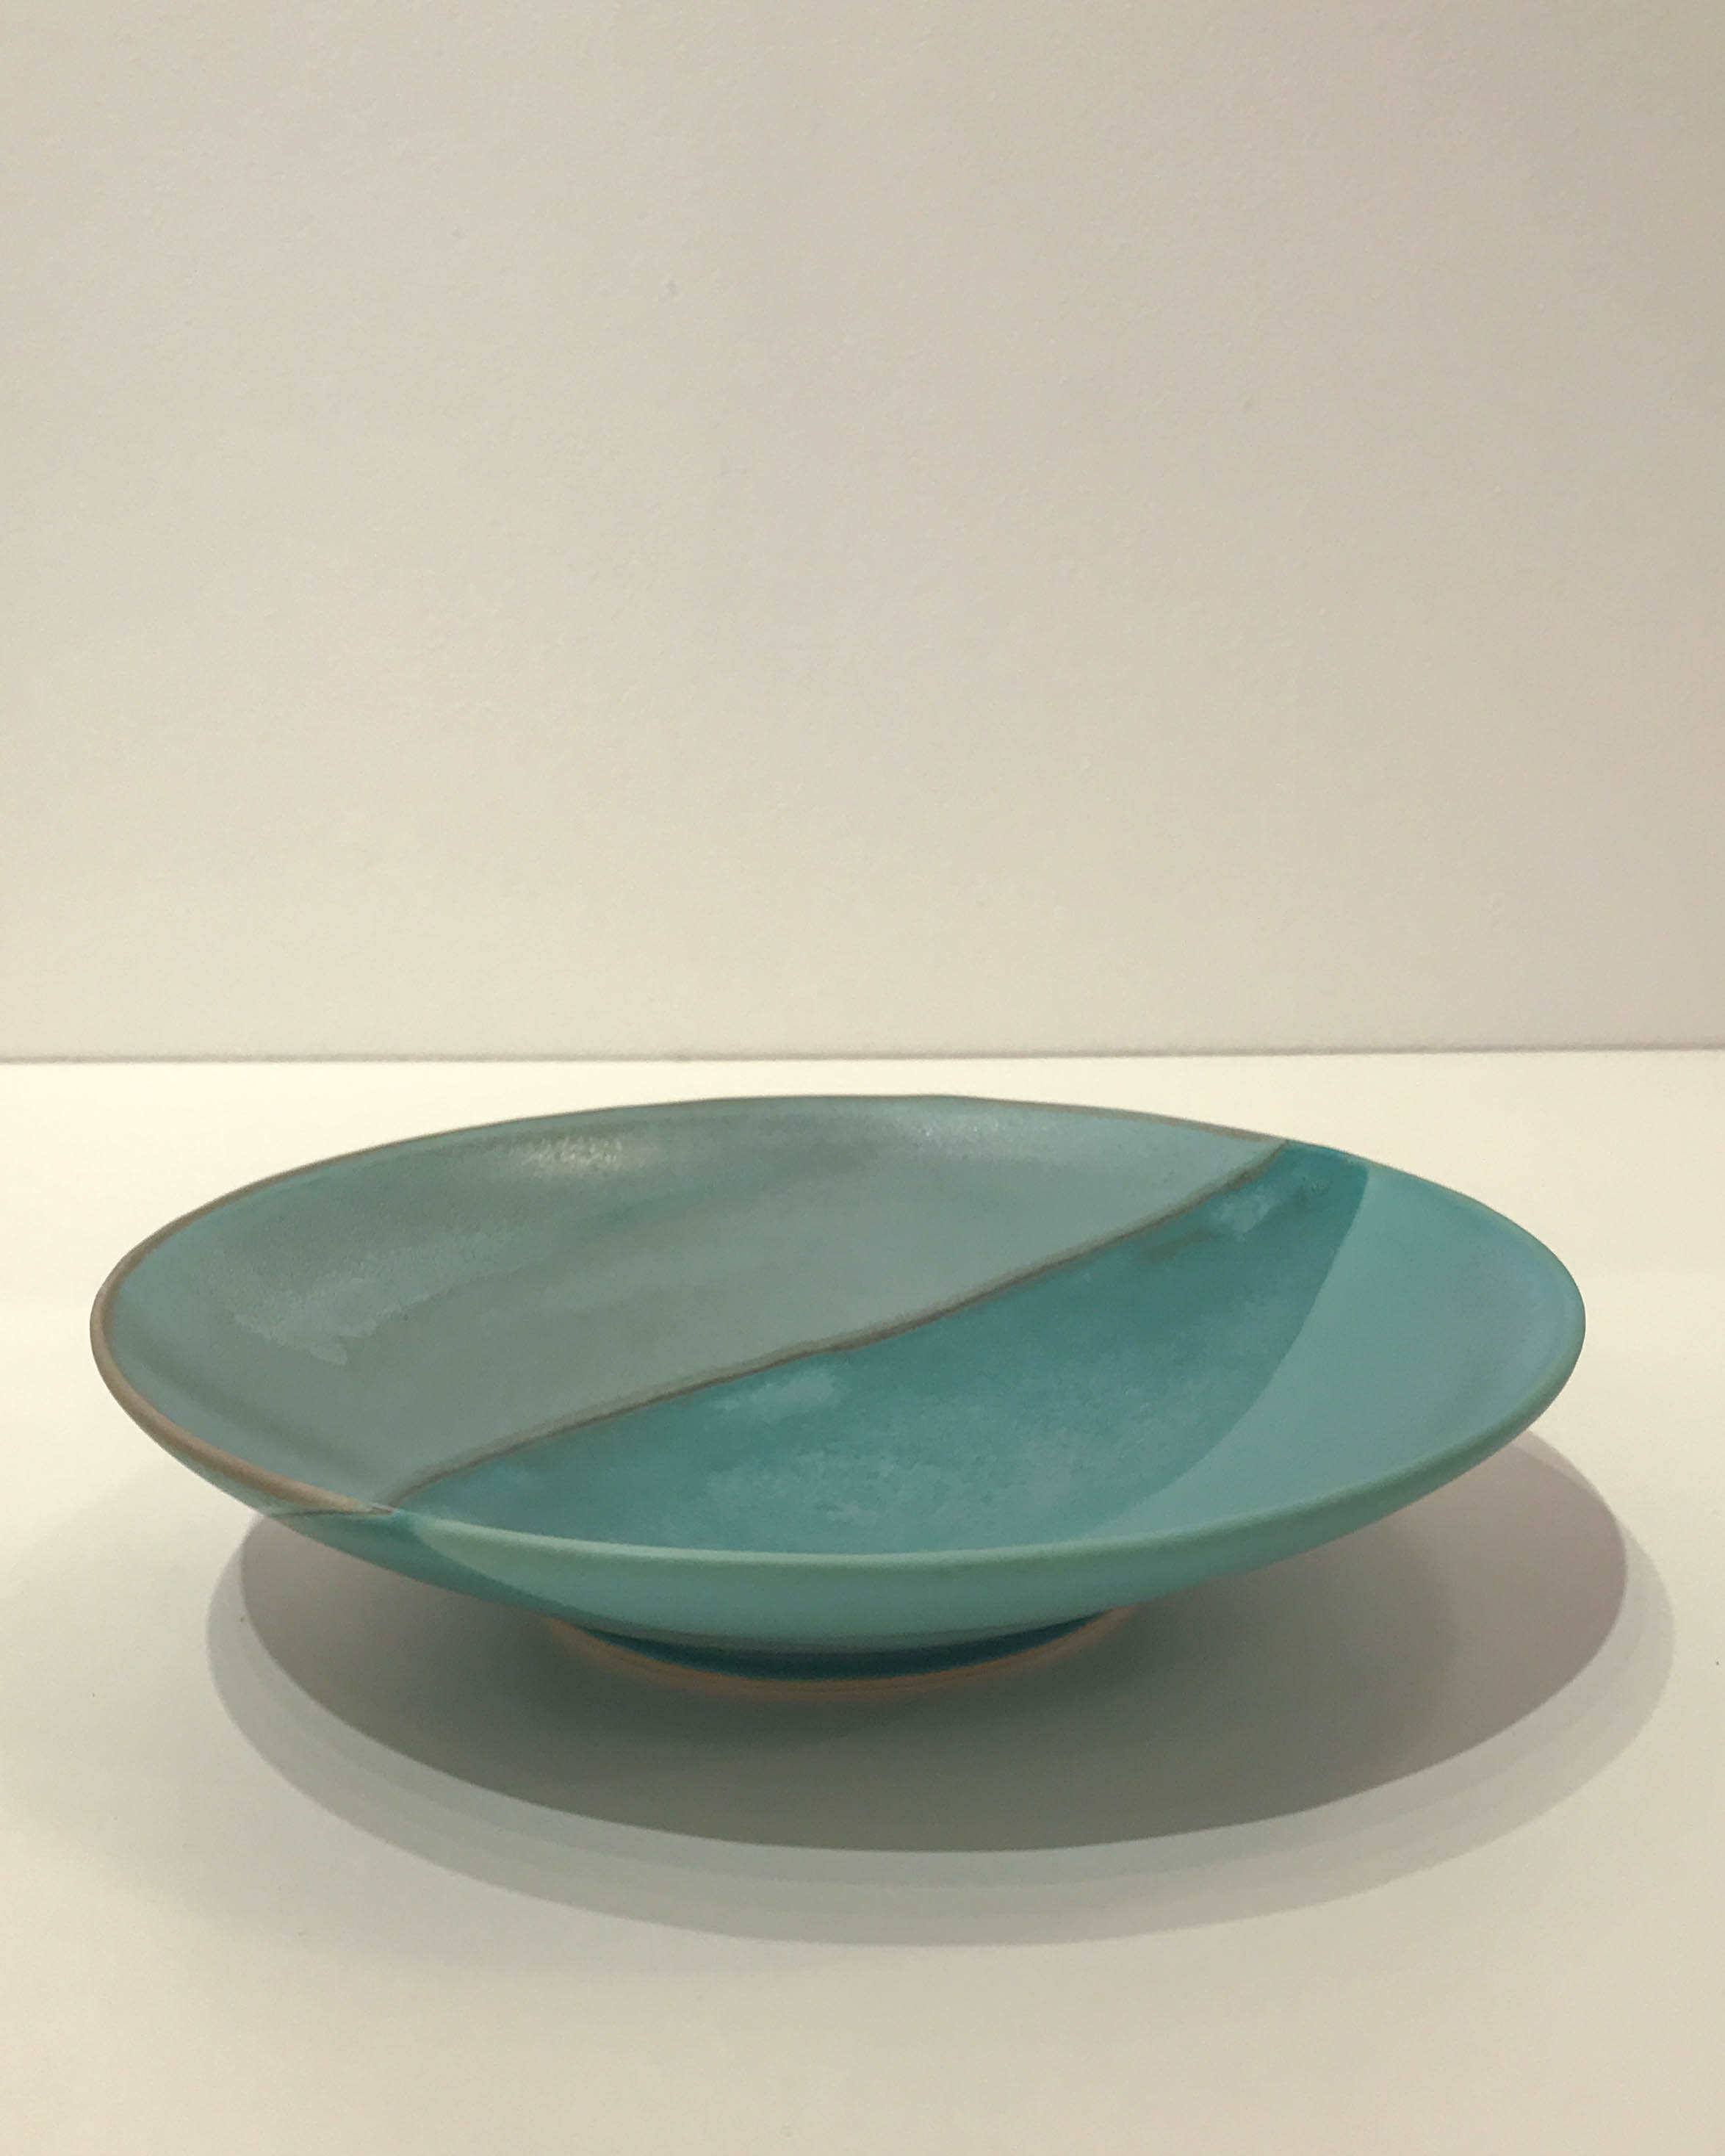 Large green deep plate, hand-thrown stoneware, $48